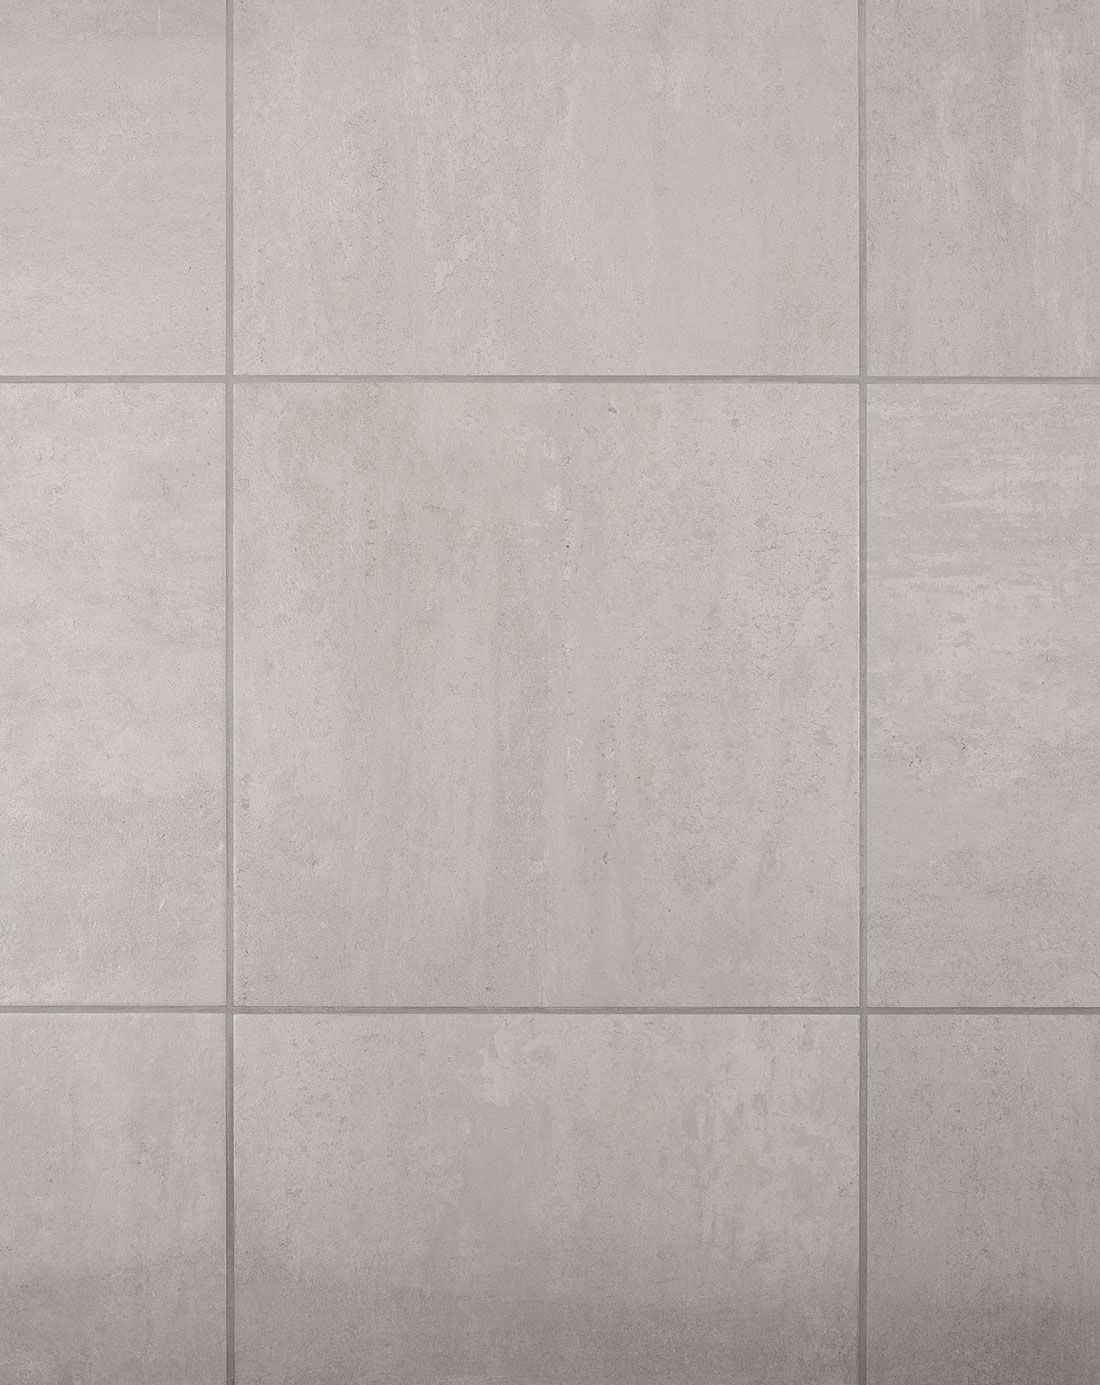 Grigio concept kitchen floor tiles 1895m2 free samples grigio concept kitchen floor tiles 1895m2 free samples dailygadgetfo Image collections